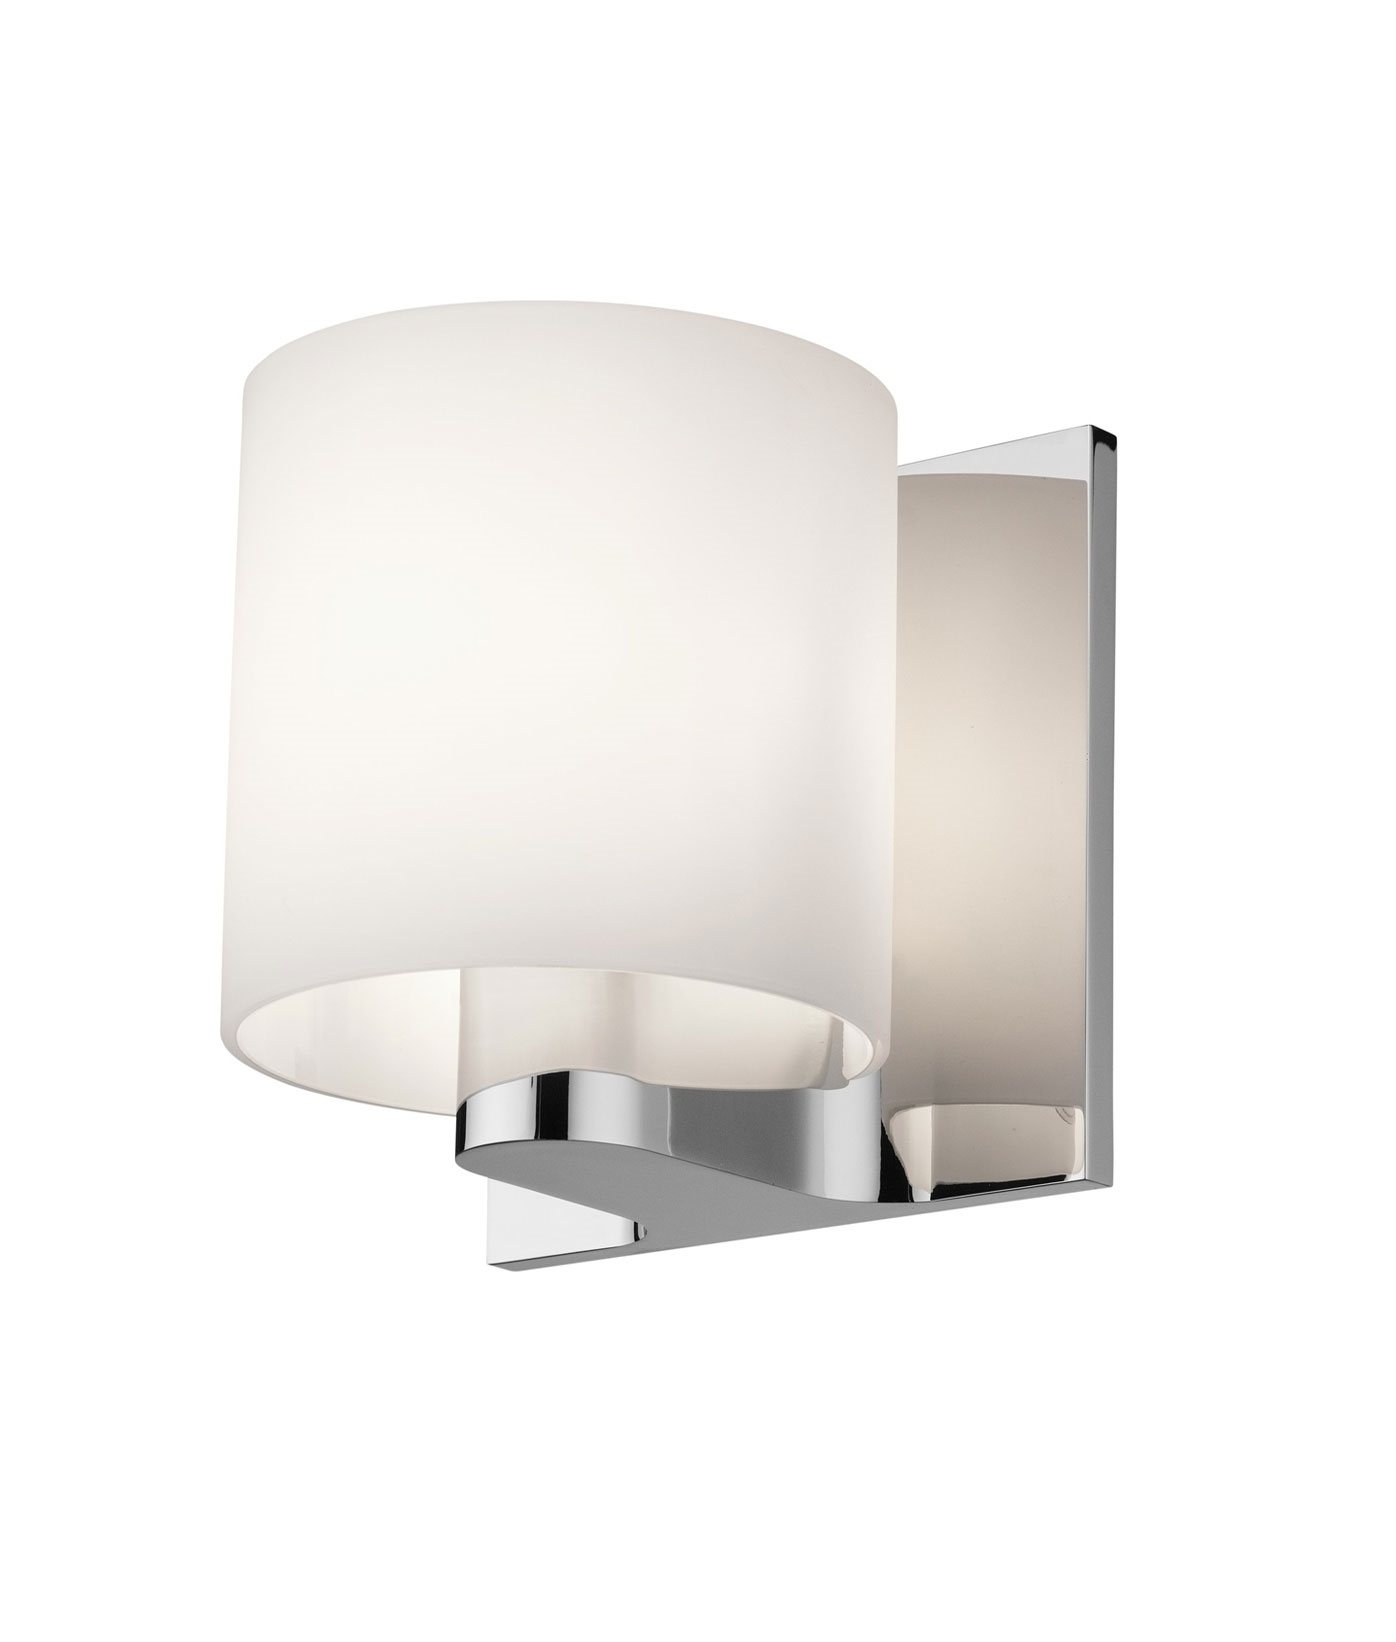 One Of The Very Best Wall Lights Ever Made Flos Tilee